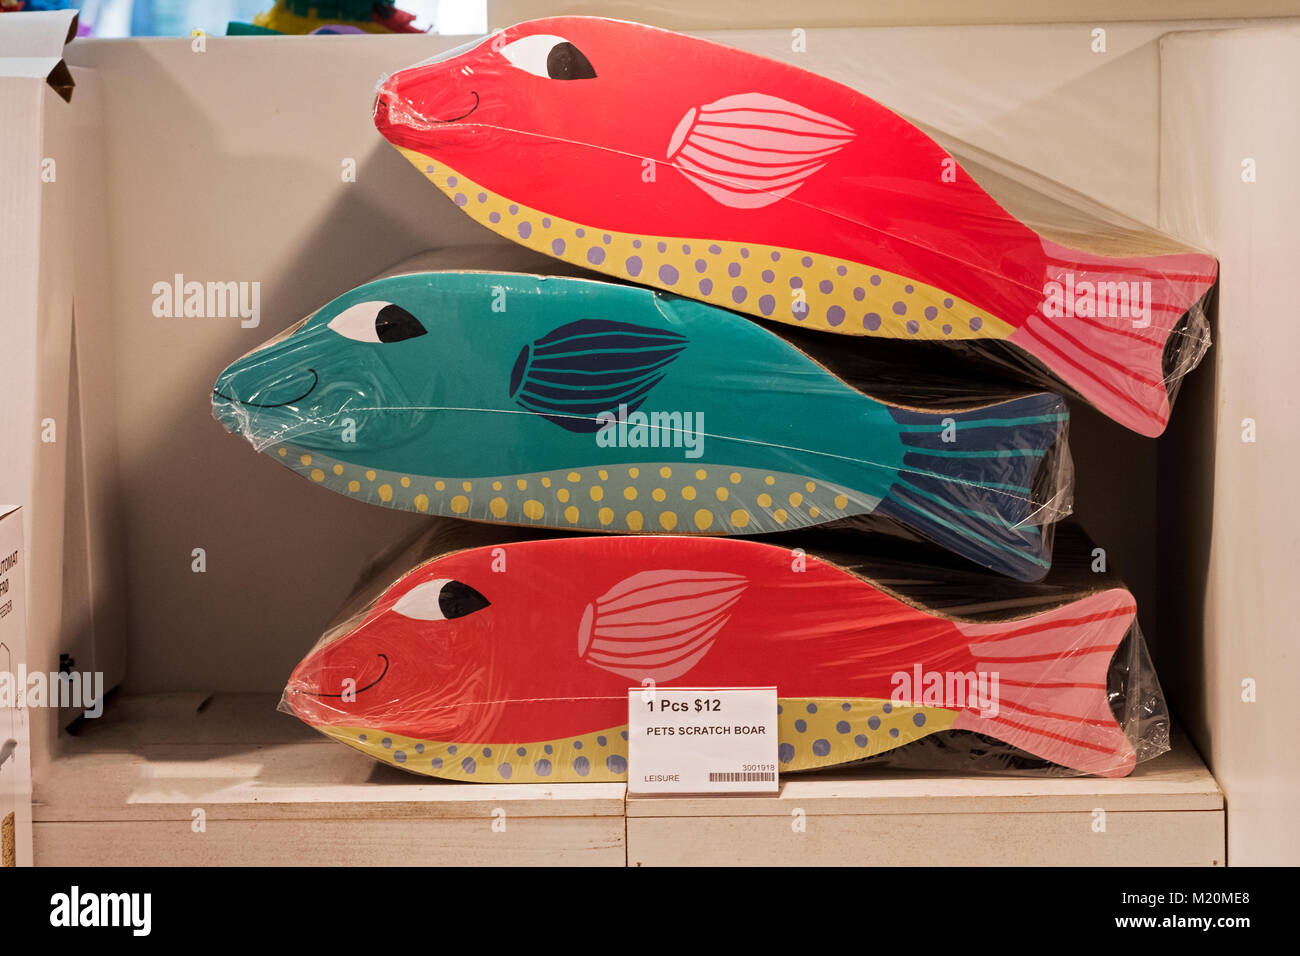 Fish shaped scratch boards for sale at Flying Tiger Copenhagen, a Danish chain store with inexpensive household - Stock Image